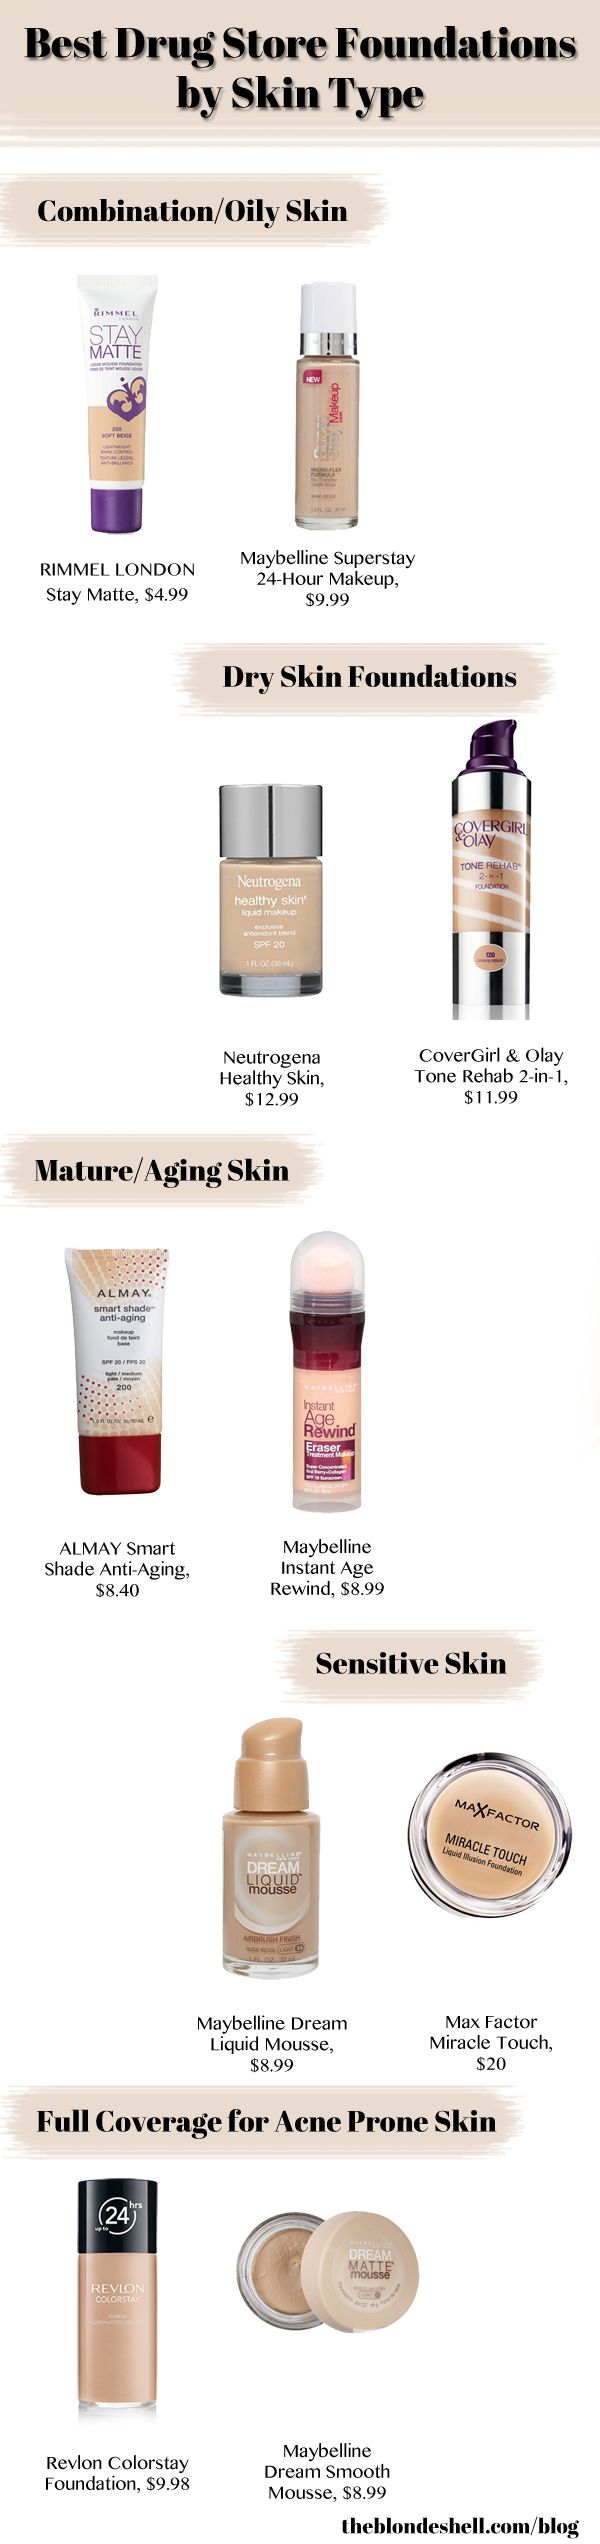 Best Drugstore Foundations for Oily, Dry, Acne Prone, Sensitive, and Mature Skin